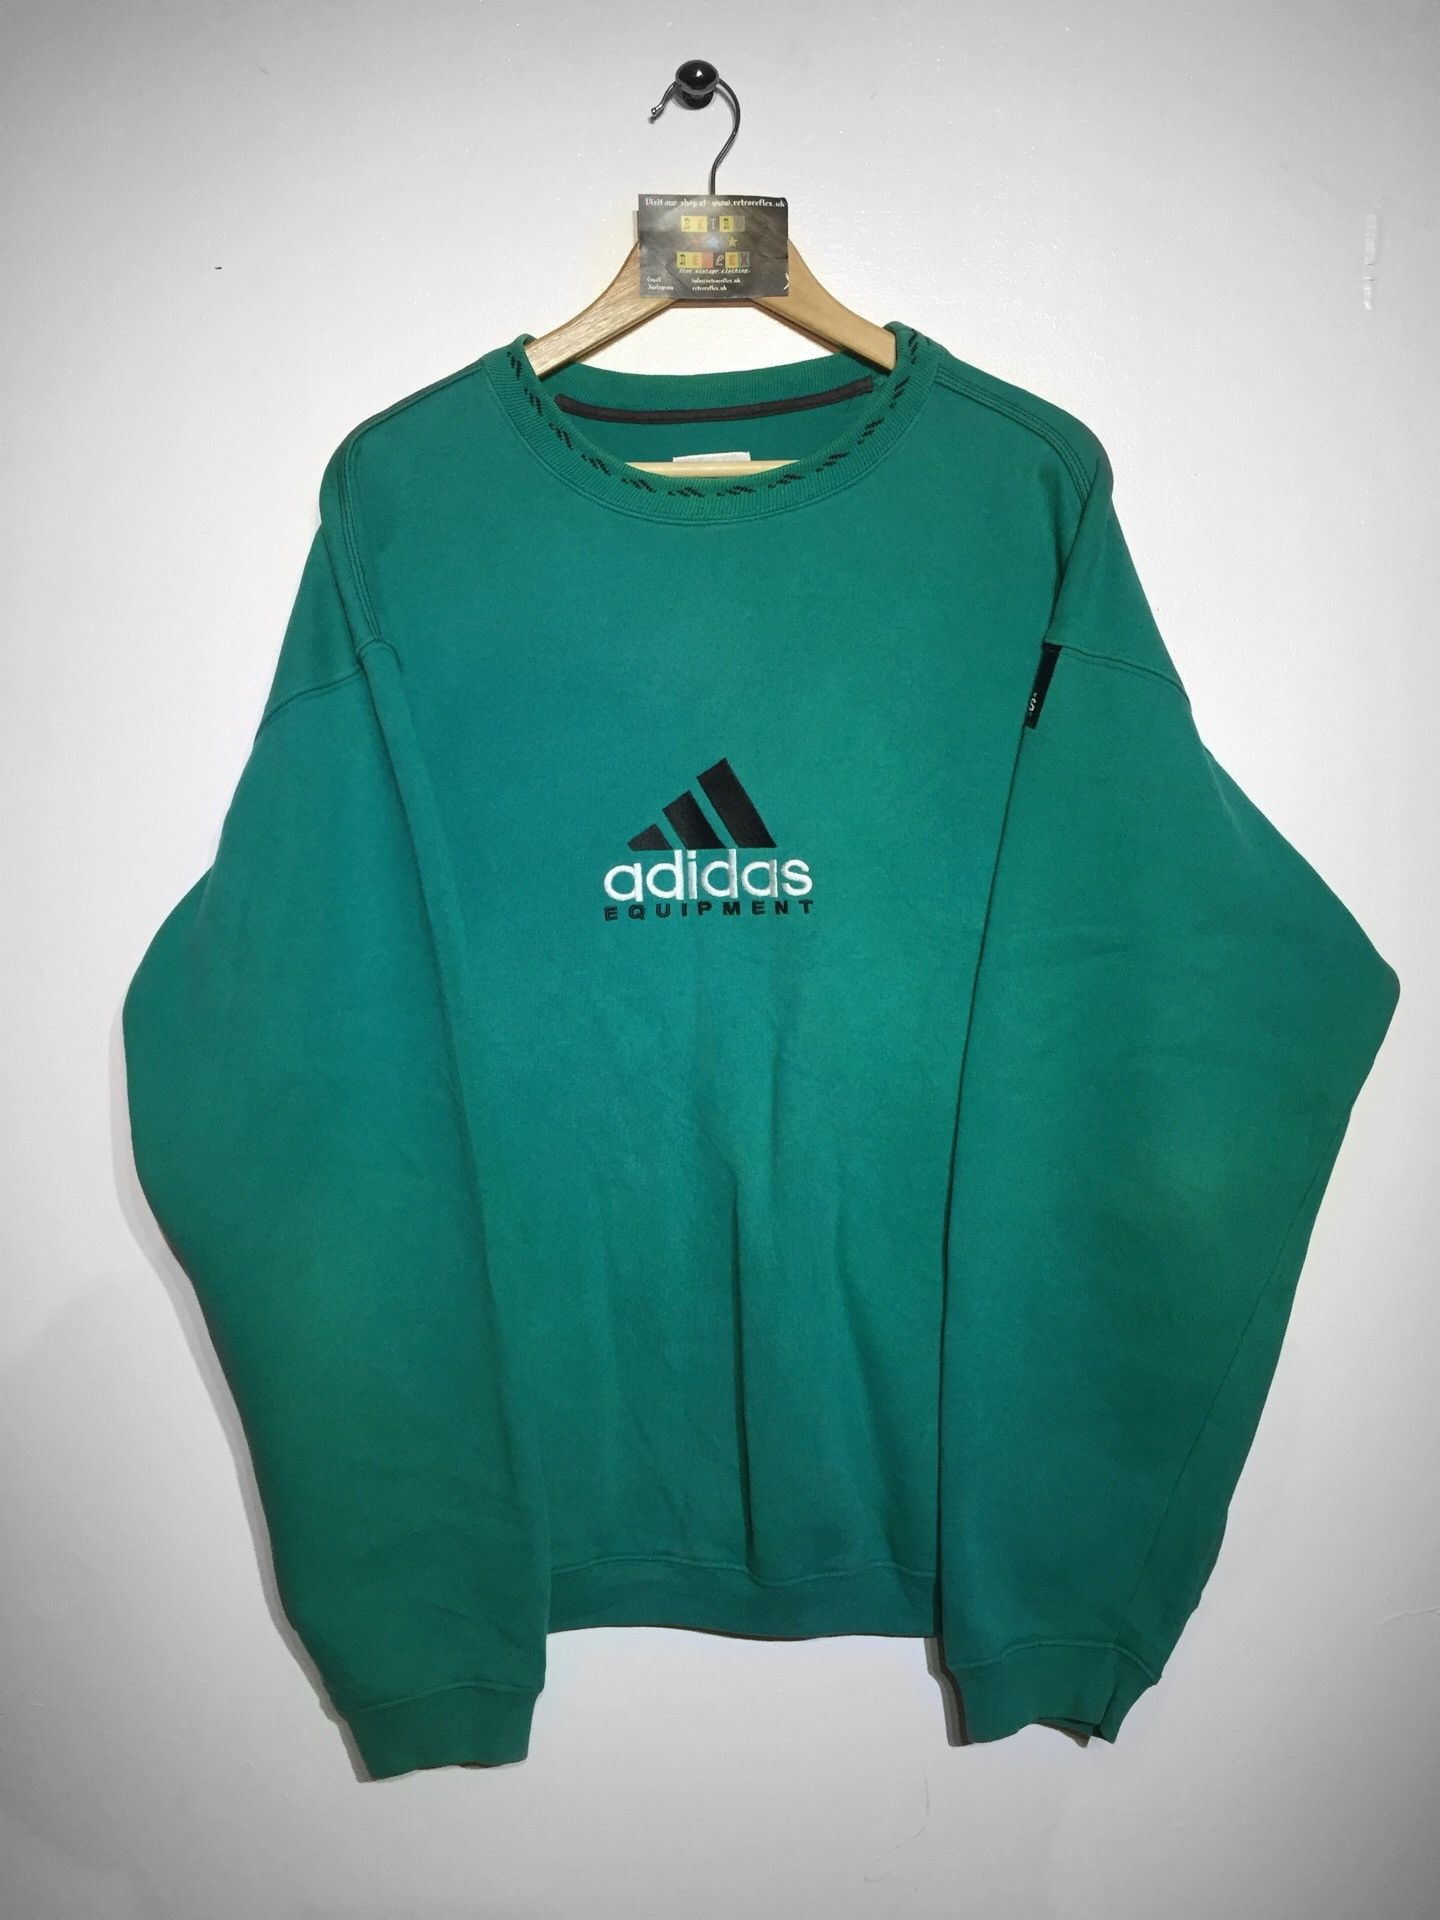 a26f0387 Adidas Equipment Sweatshirt Large (Fits Oversized) – Retro Reflex - Home to  Vintage And Retro Clothing UK